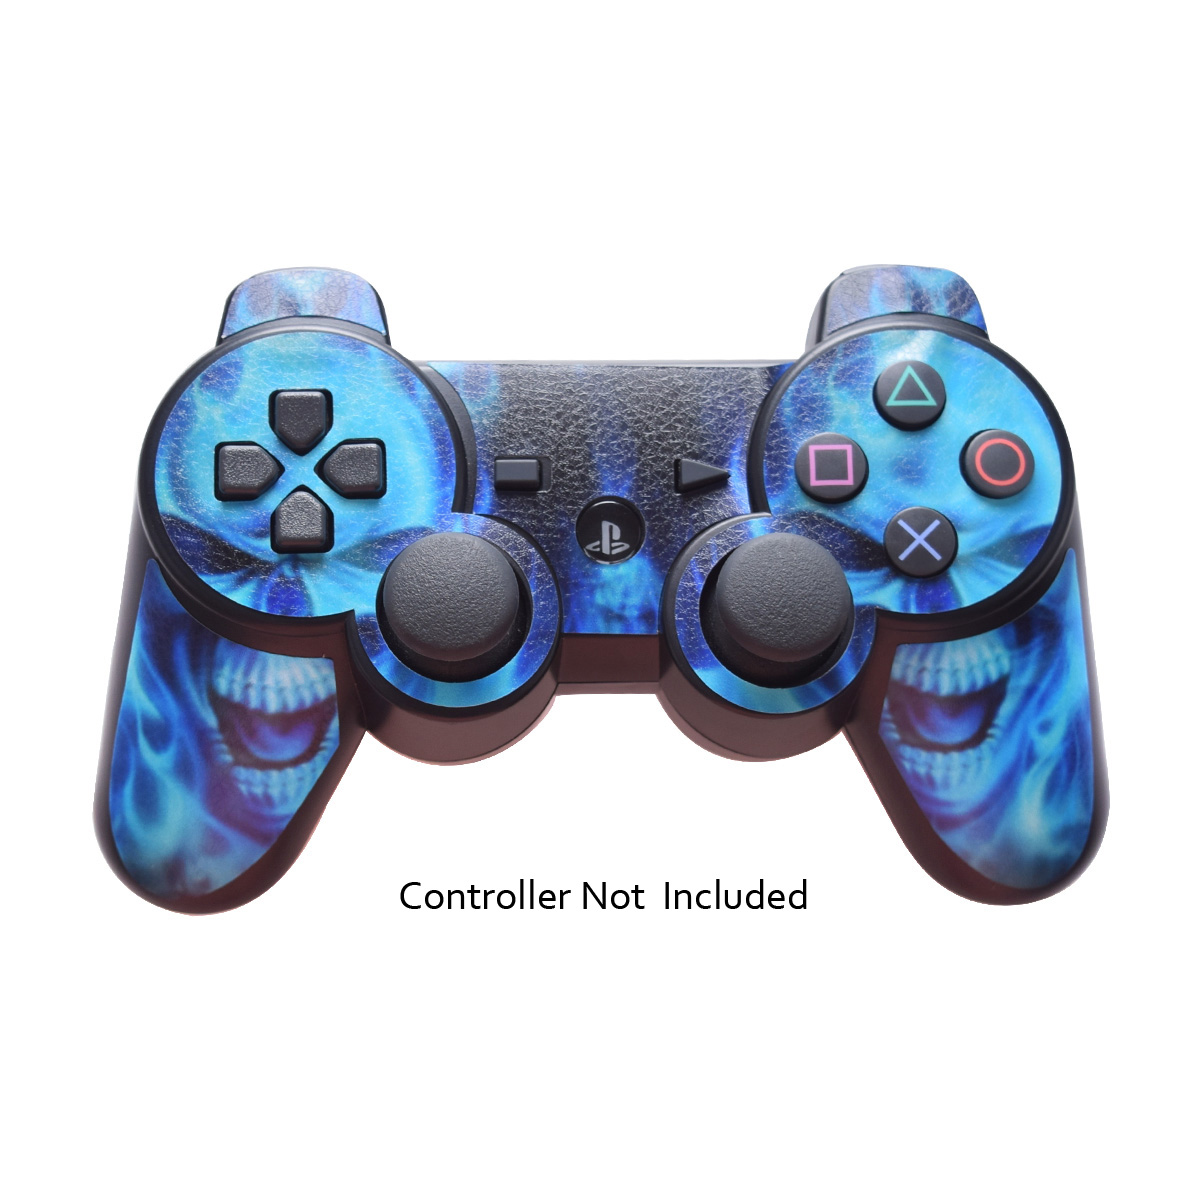 Skin Stickers for Playstation 3 Controller - Vinyl Leather Texture Sticker for DualShock 3 Wireless Game Sixaxis Controllers - Protectors Controller Decal - Blue daemon